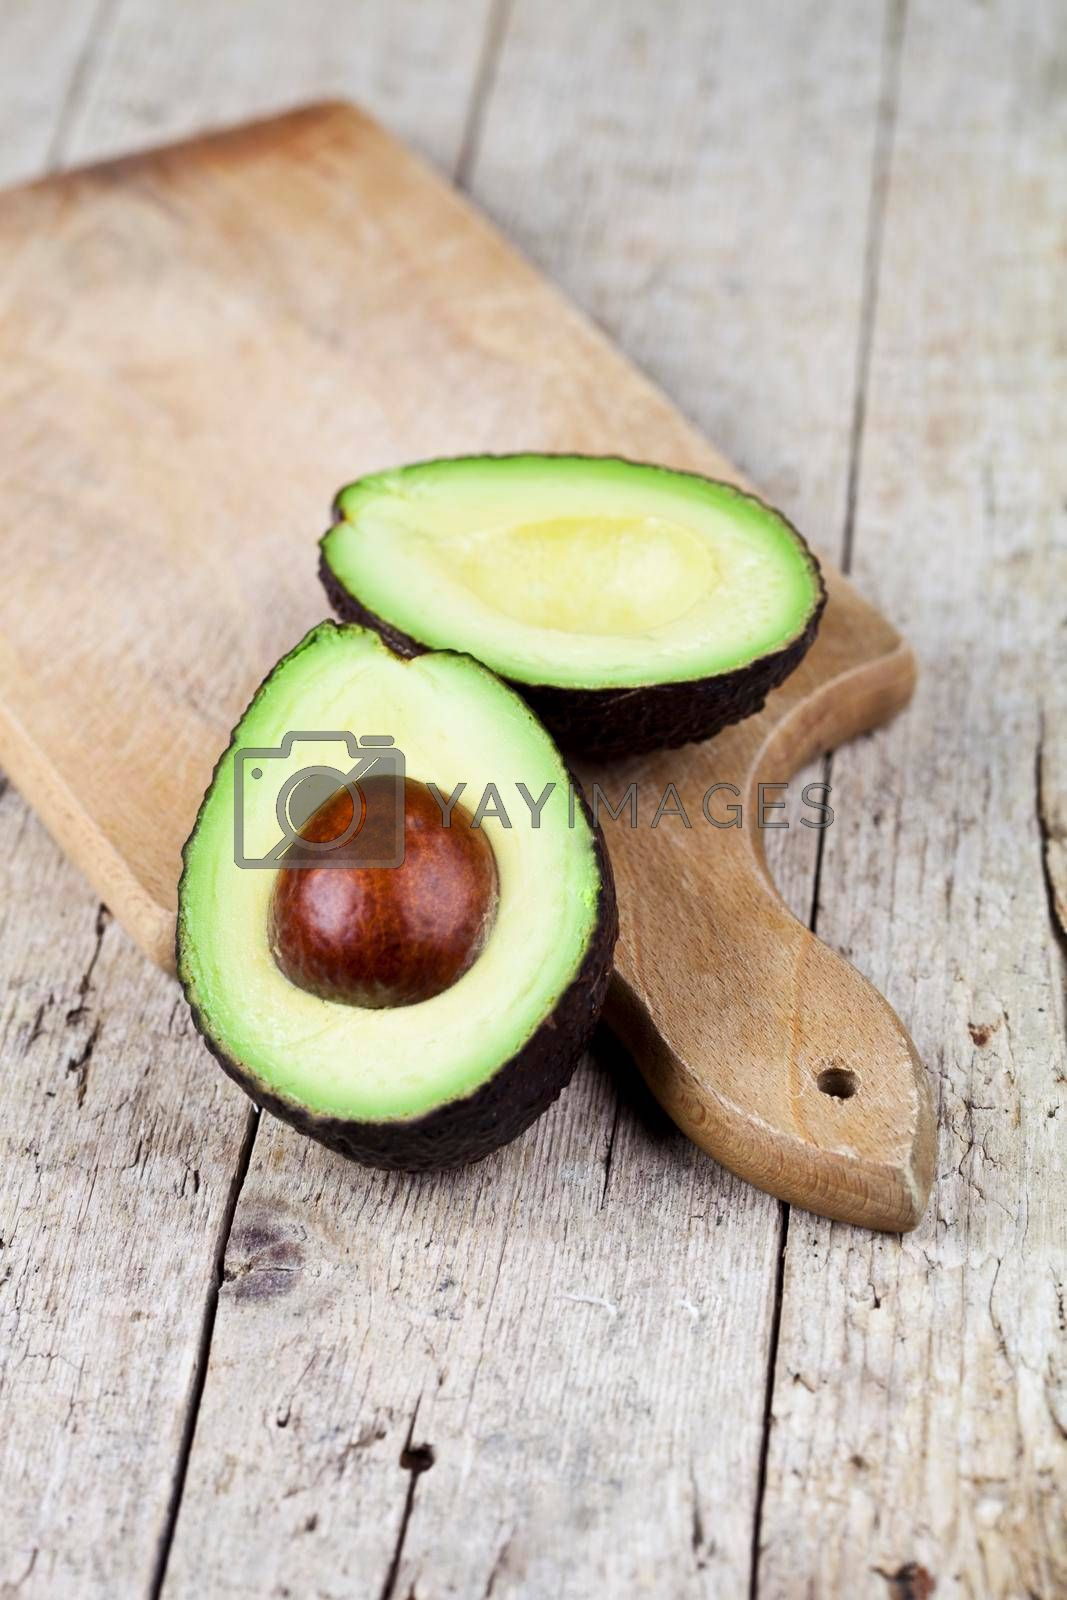 Fresh organic avocado halves on cutting board on old wooden table background. Healthy food concept.